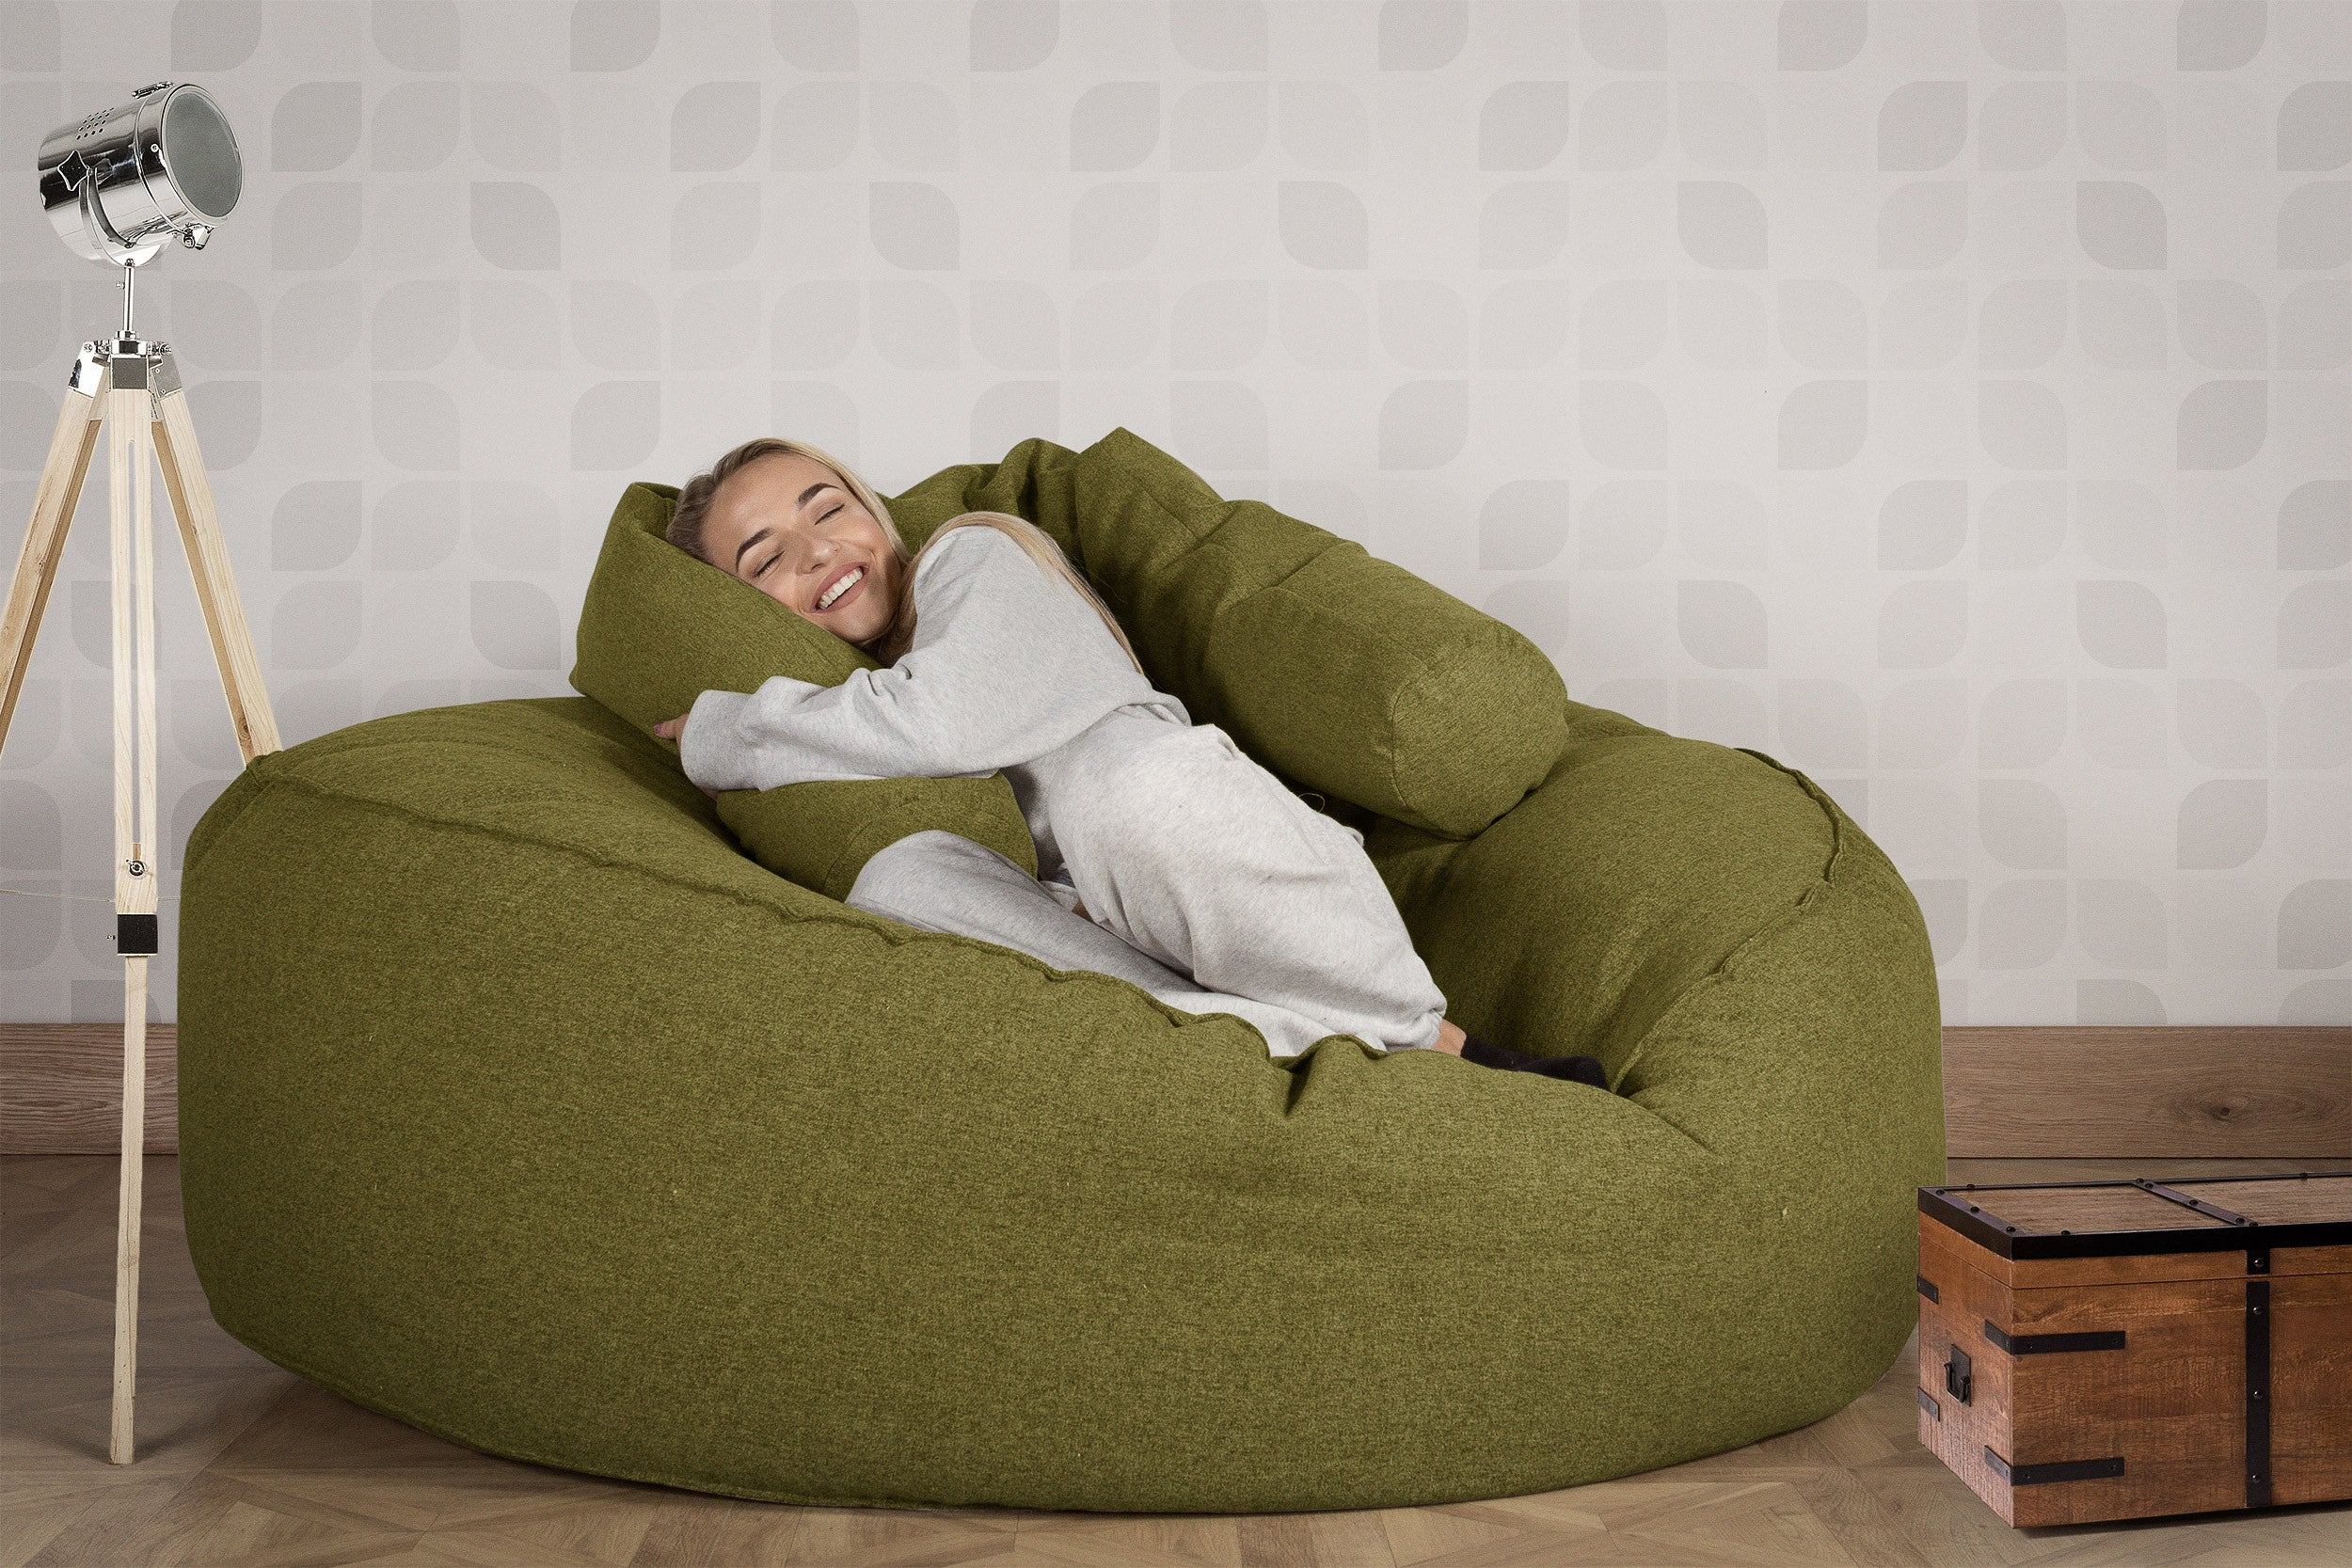 Mega Mammoth Bean Bag Sofa - Interalli Lime Green